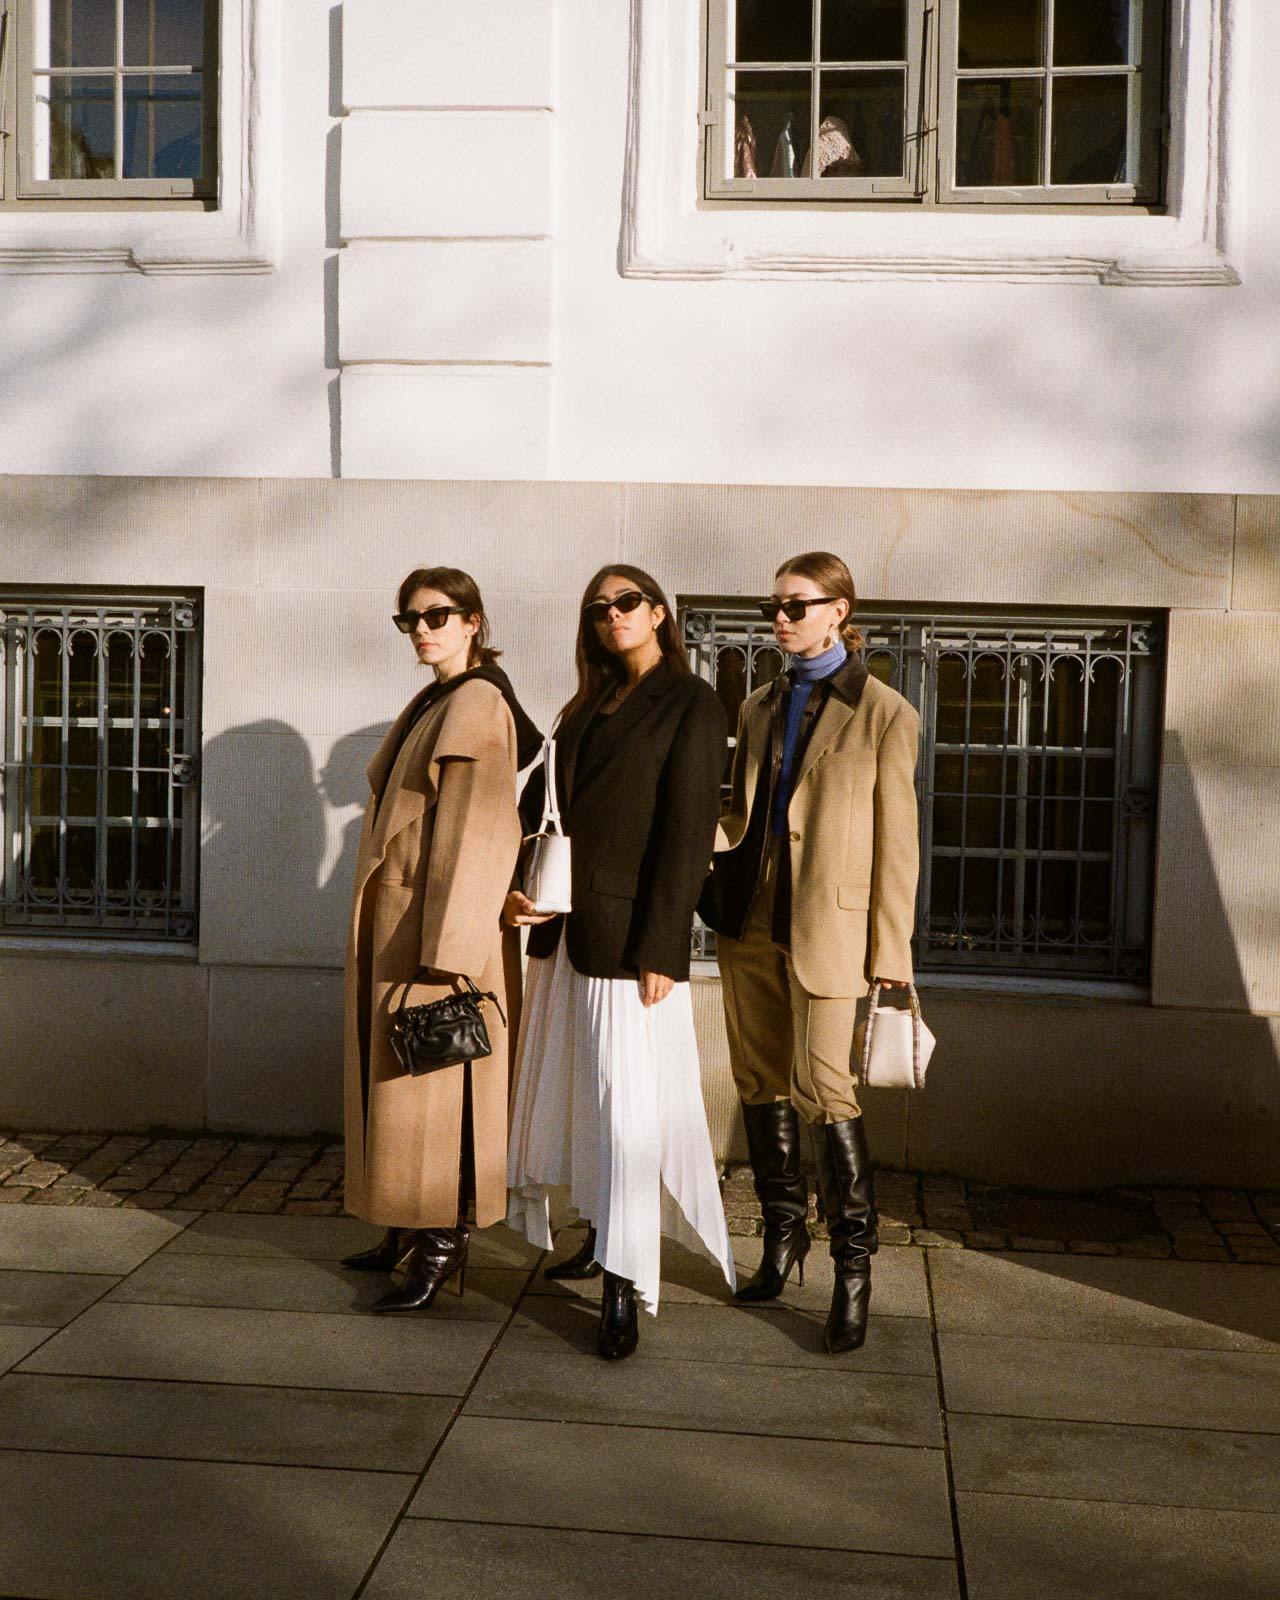 Copenhagen Fashion Week AW2020 with Carola Pojer, Storm Westphal and Swantje Soemmer